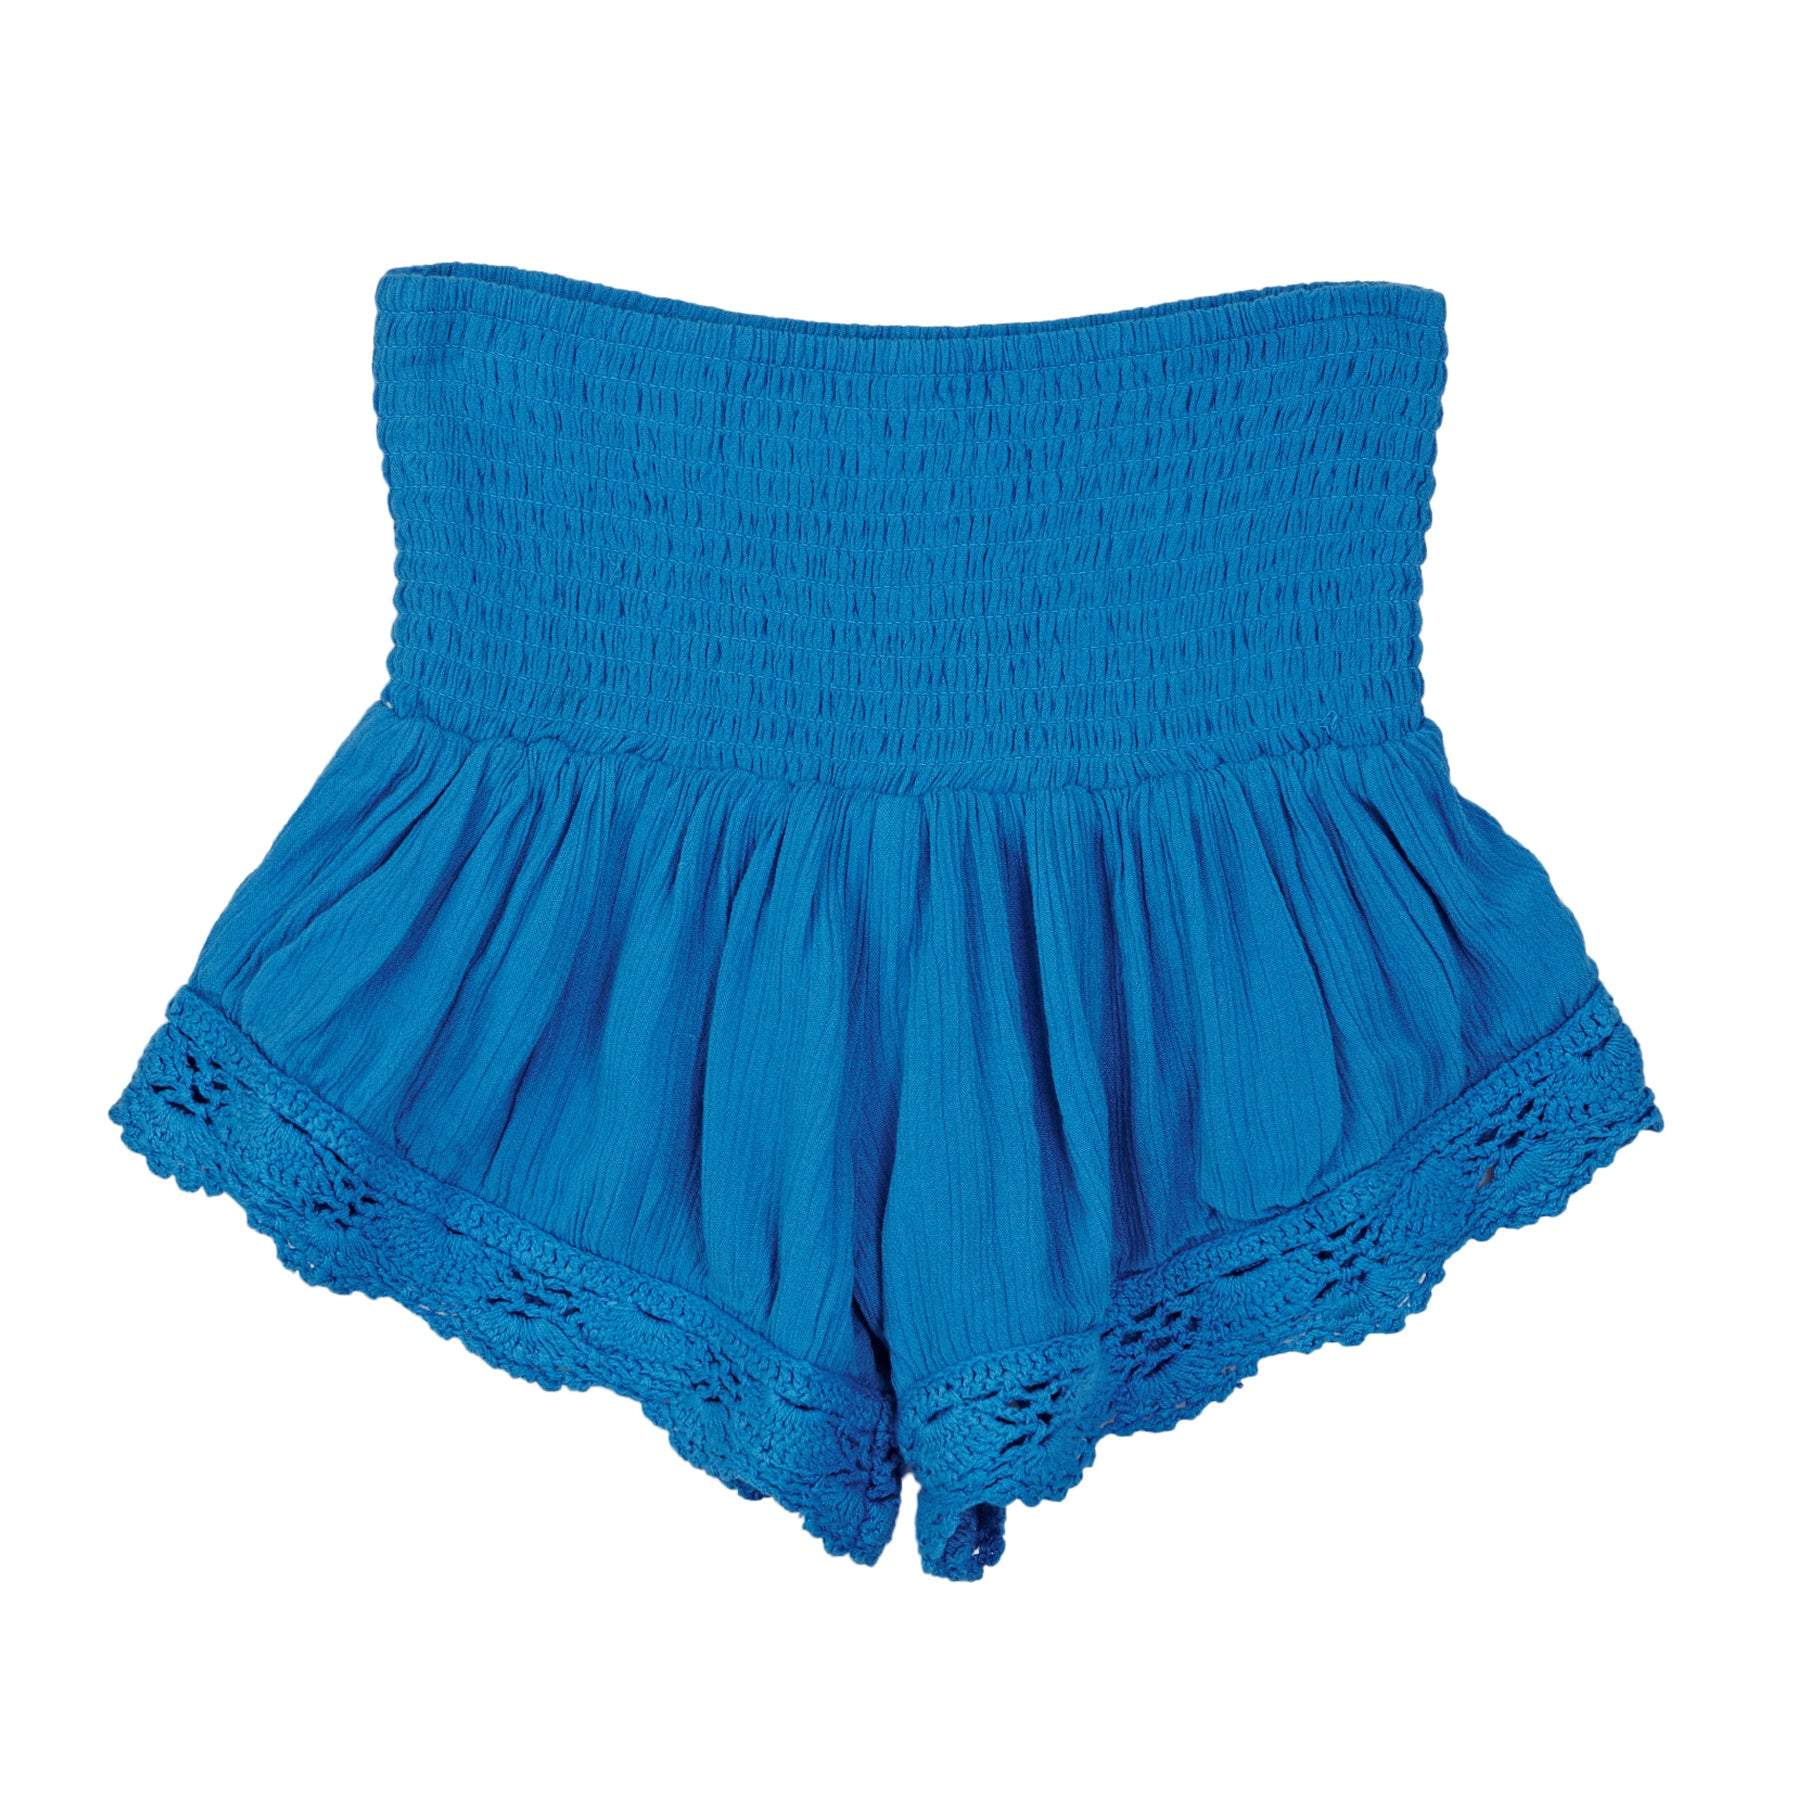 Seafolly Summer Essentials Girls Shorts - Hawaiiblue